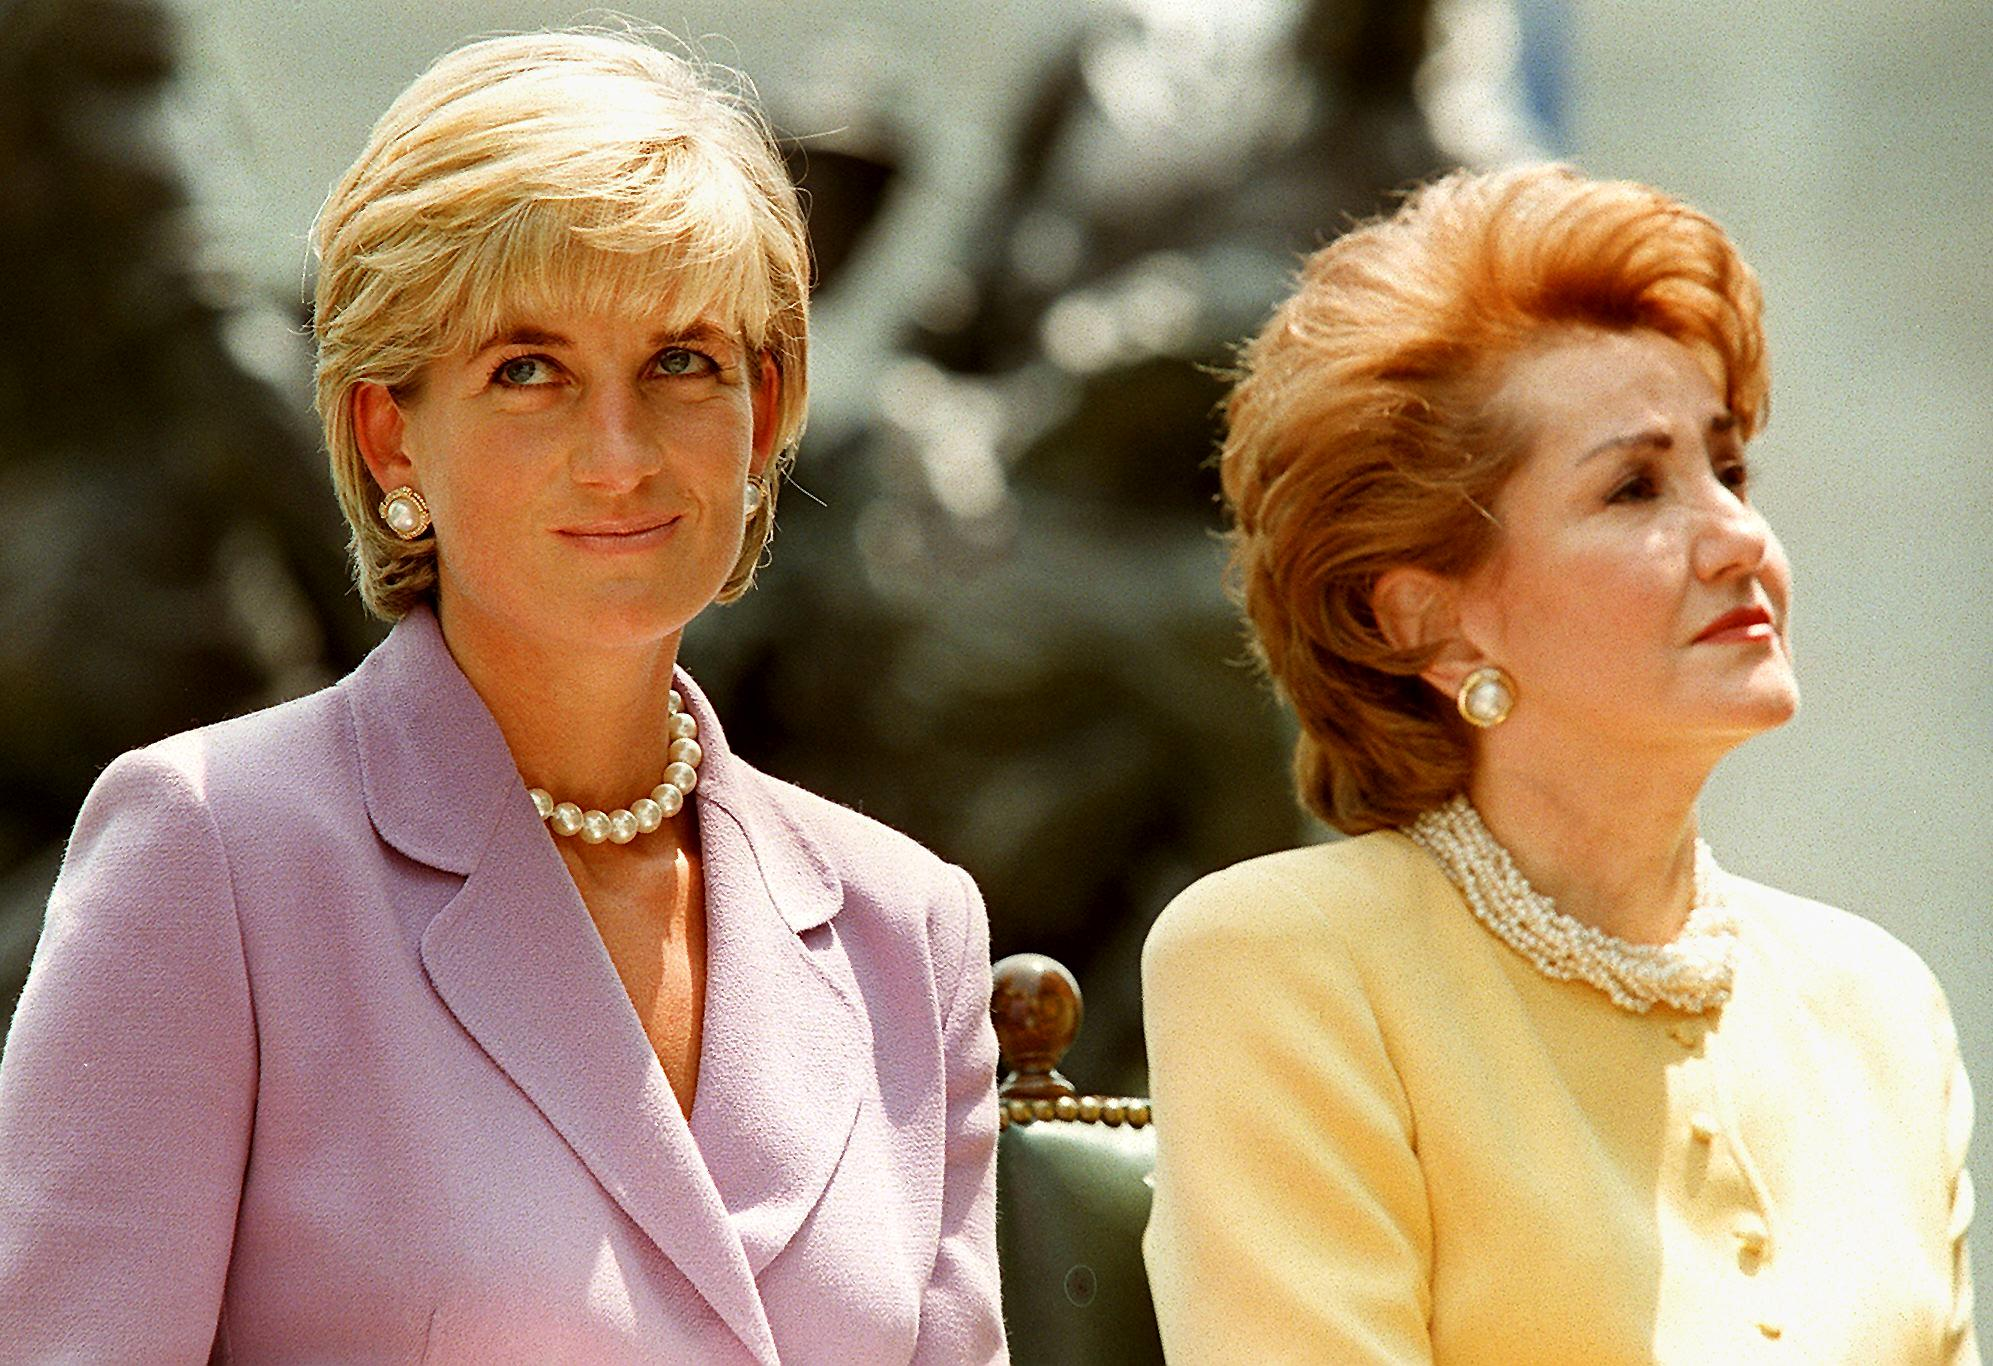 princess diana in a purple blazer next to elizabeth dole in a yellow one